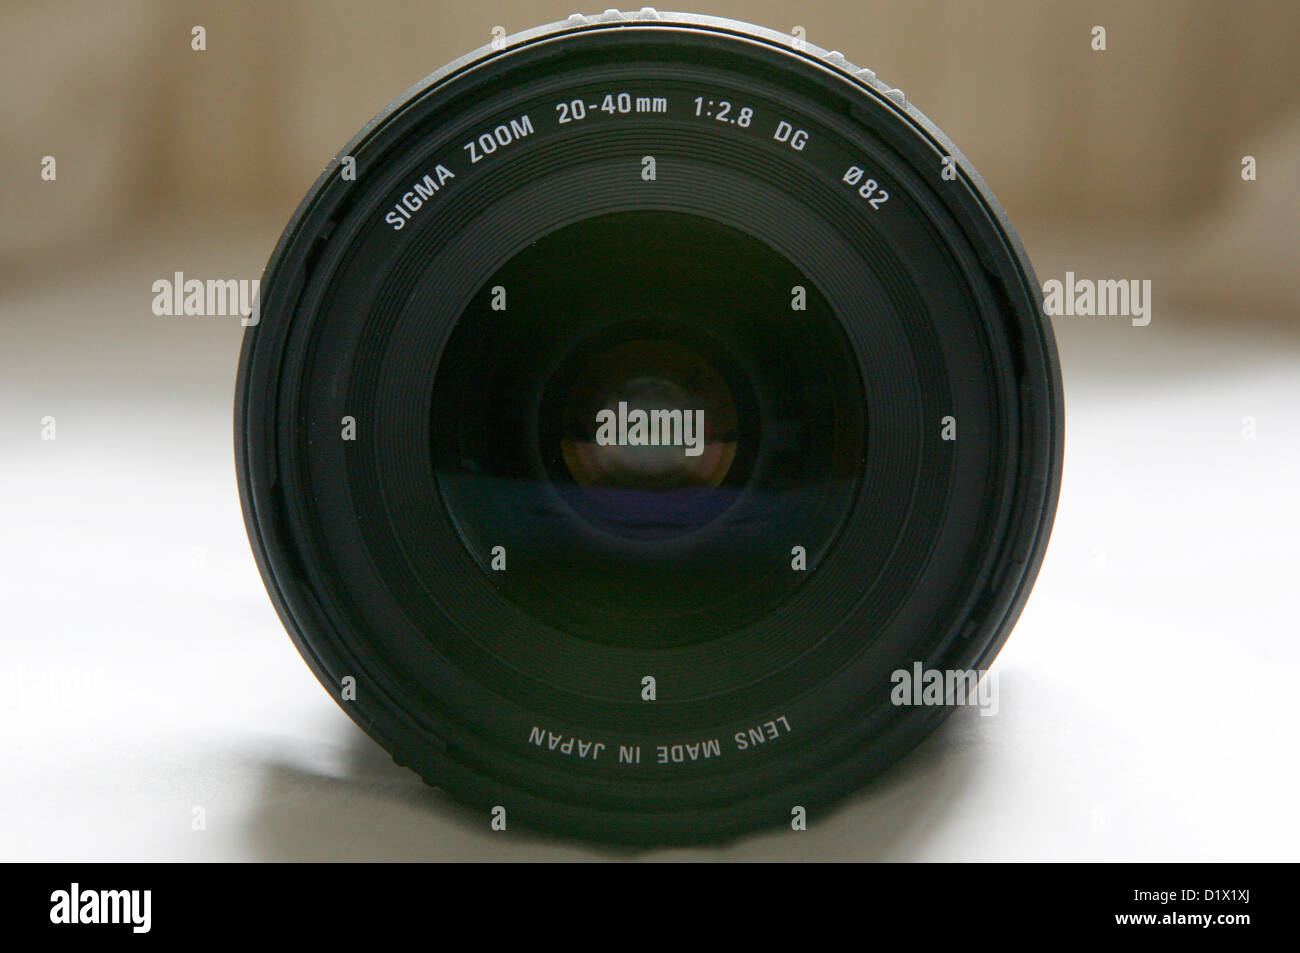 The front glass of a Sigma wide angle lens. Stock Photo